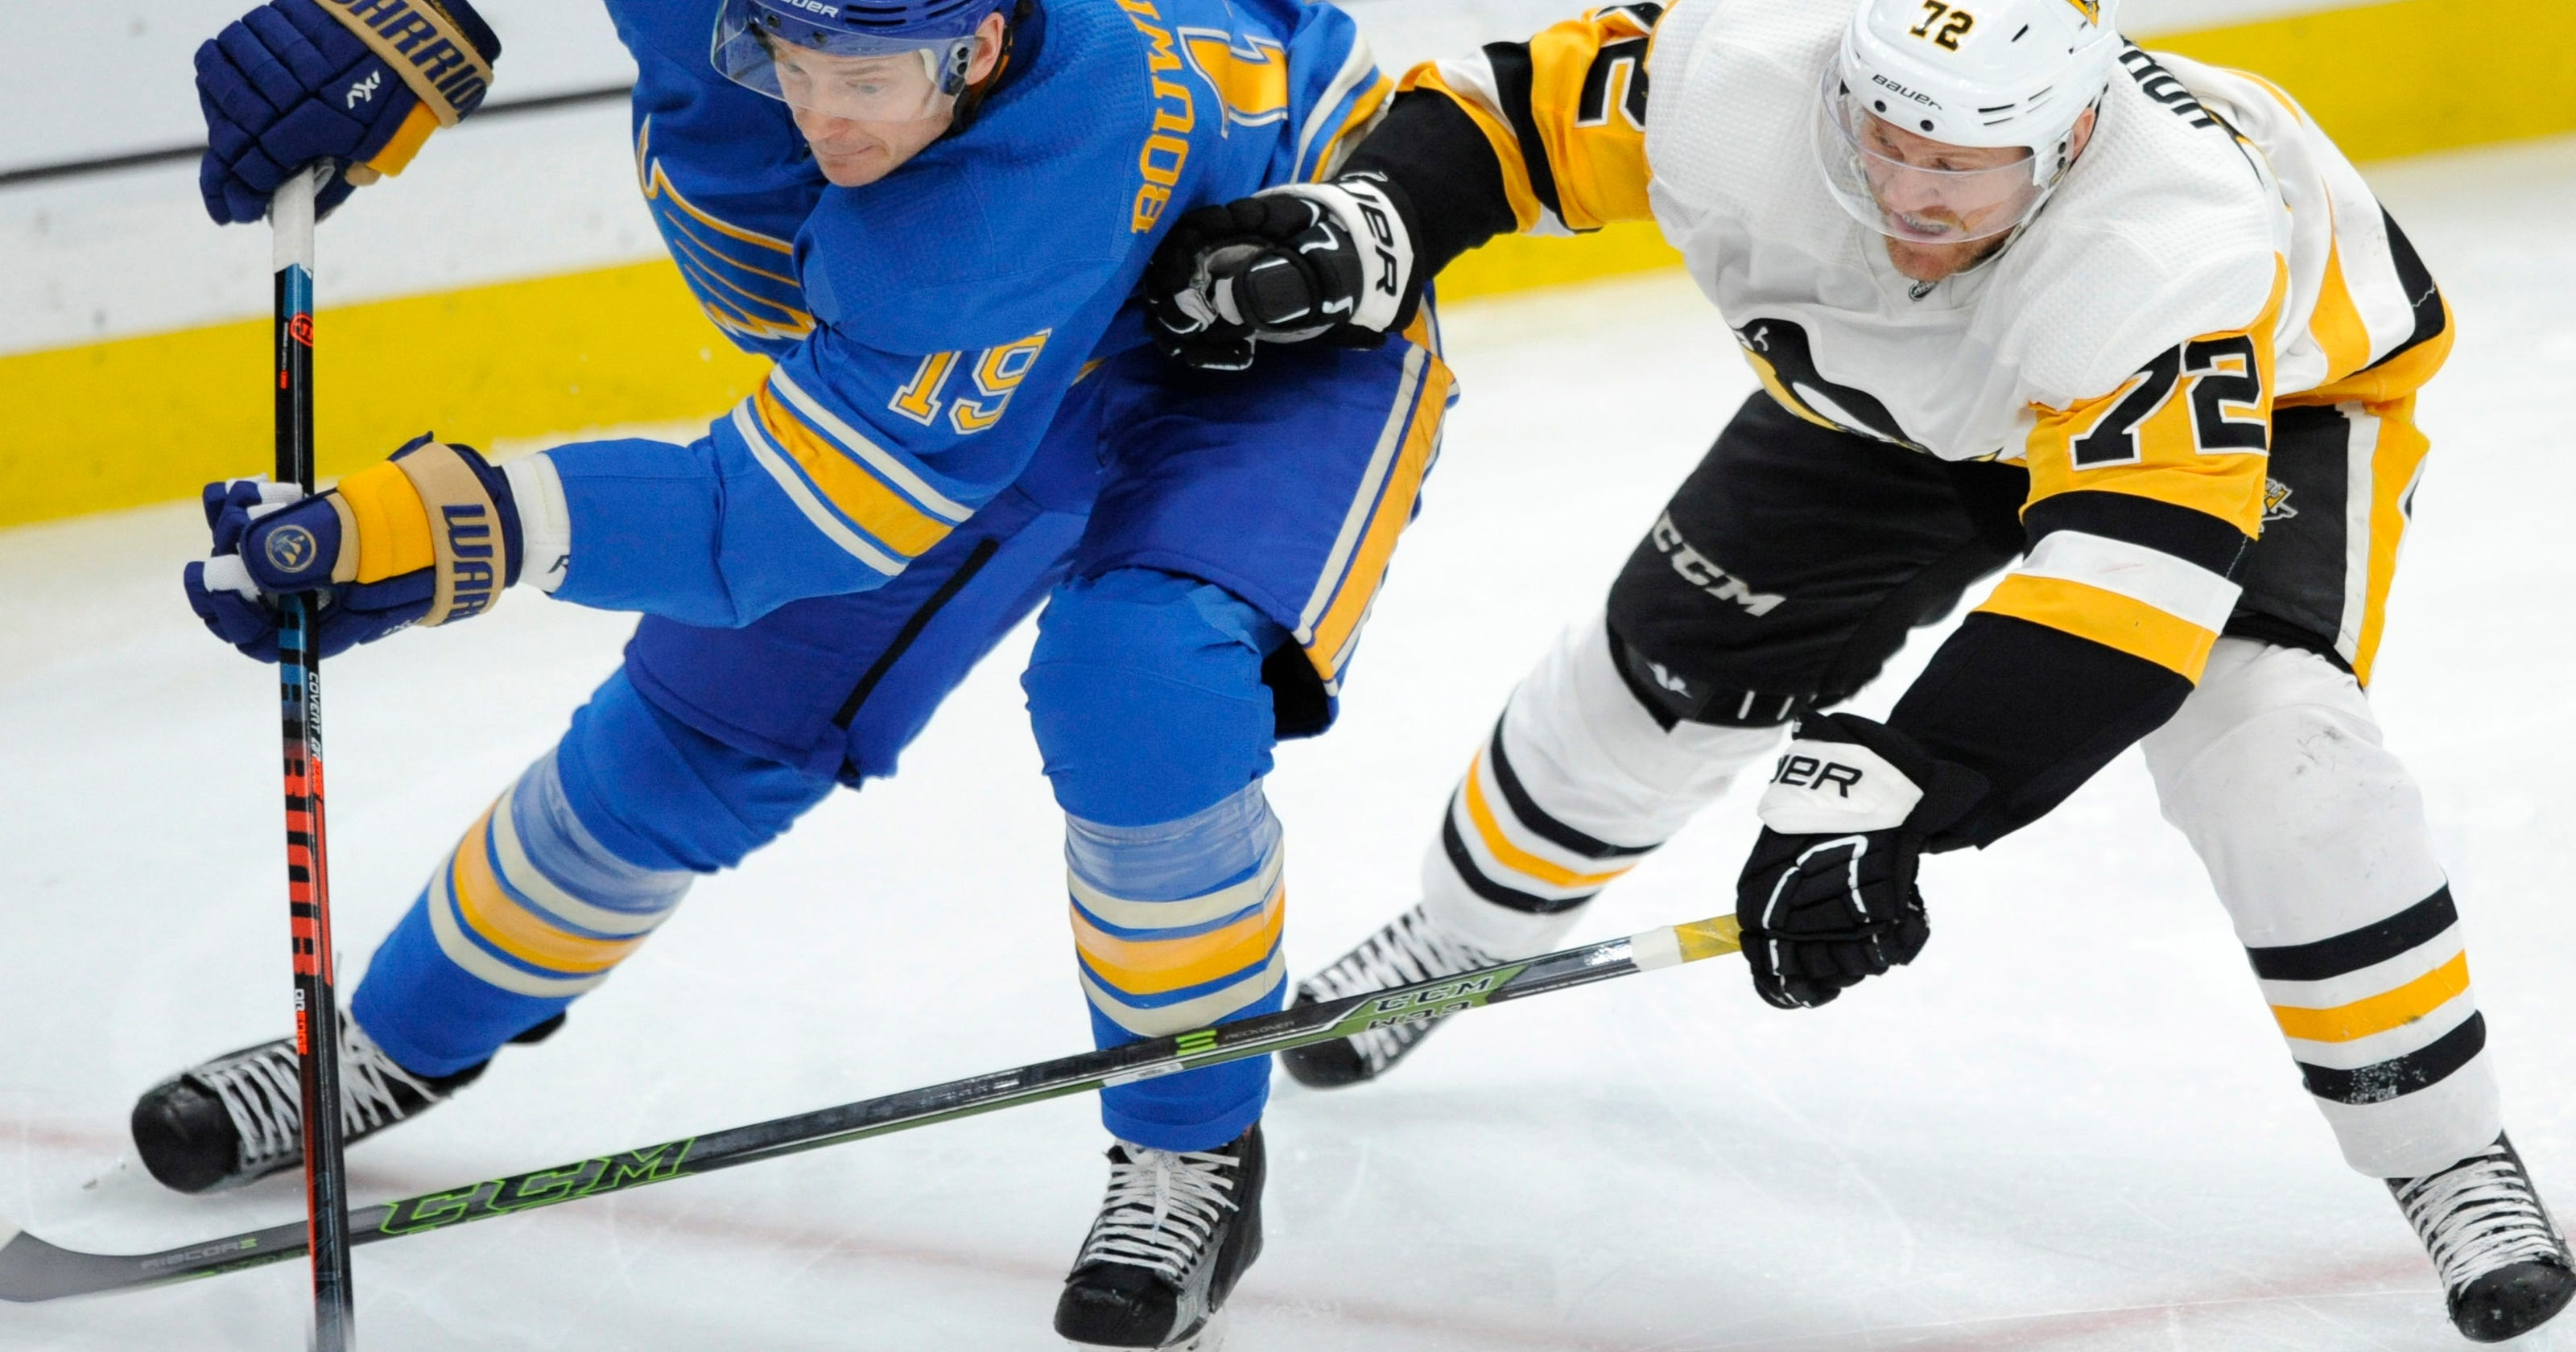 finest selection 8d00b a79f3 Crosby s 4 points lead streaking Penguins past Blues 6-1